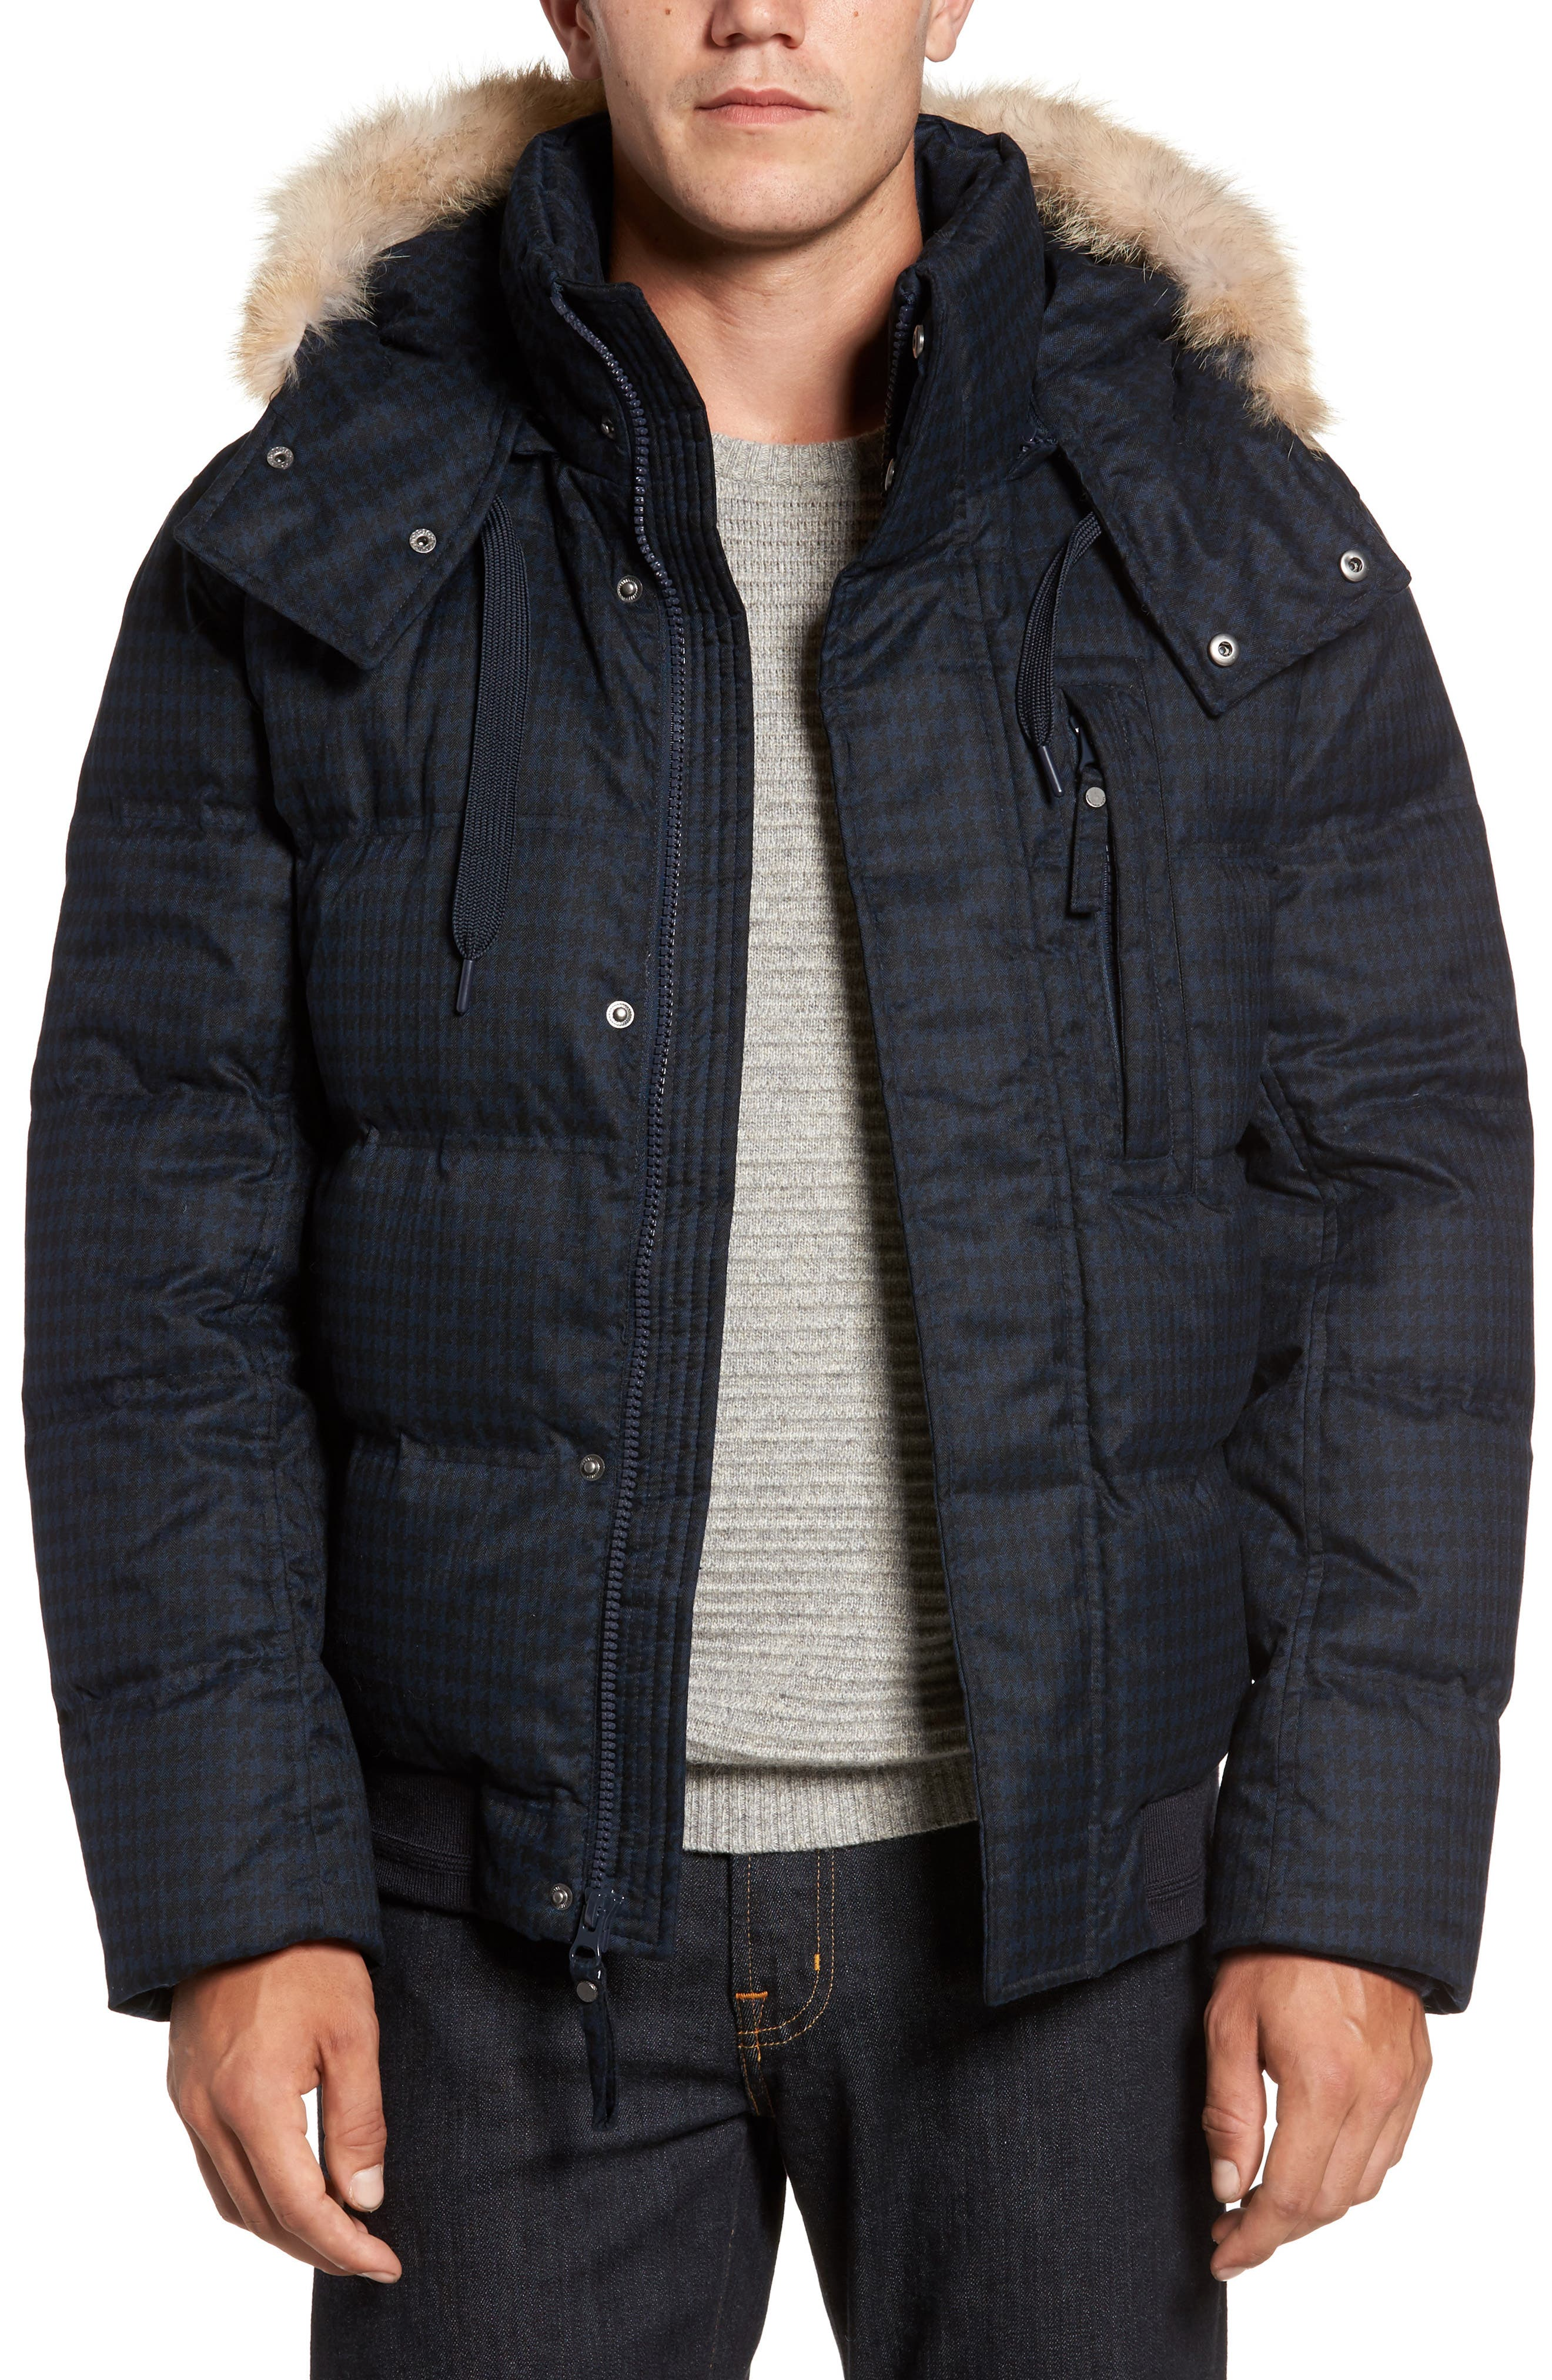 Andrew Marc Print Quilted Jacket with Genuine Coyote Fur Trim